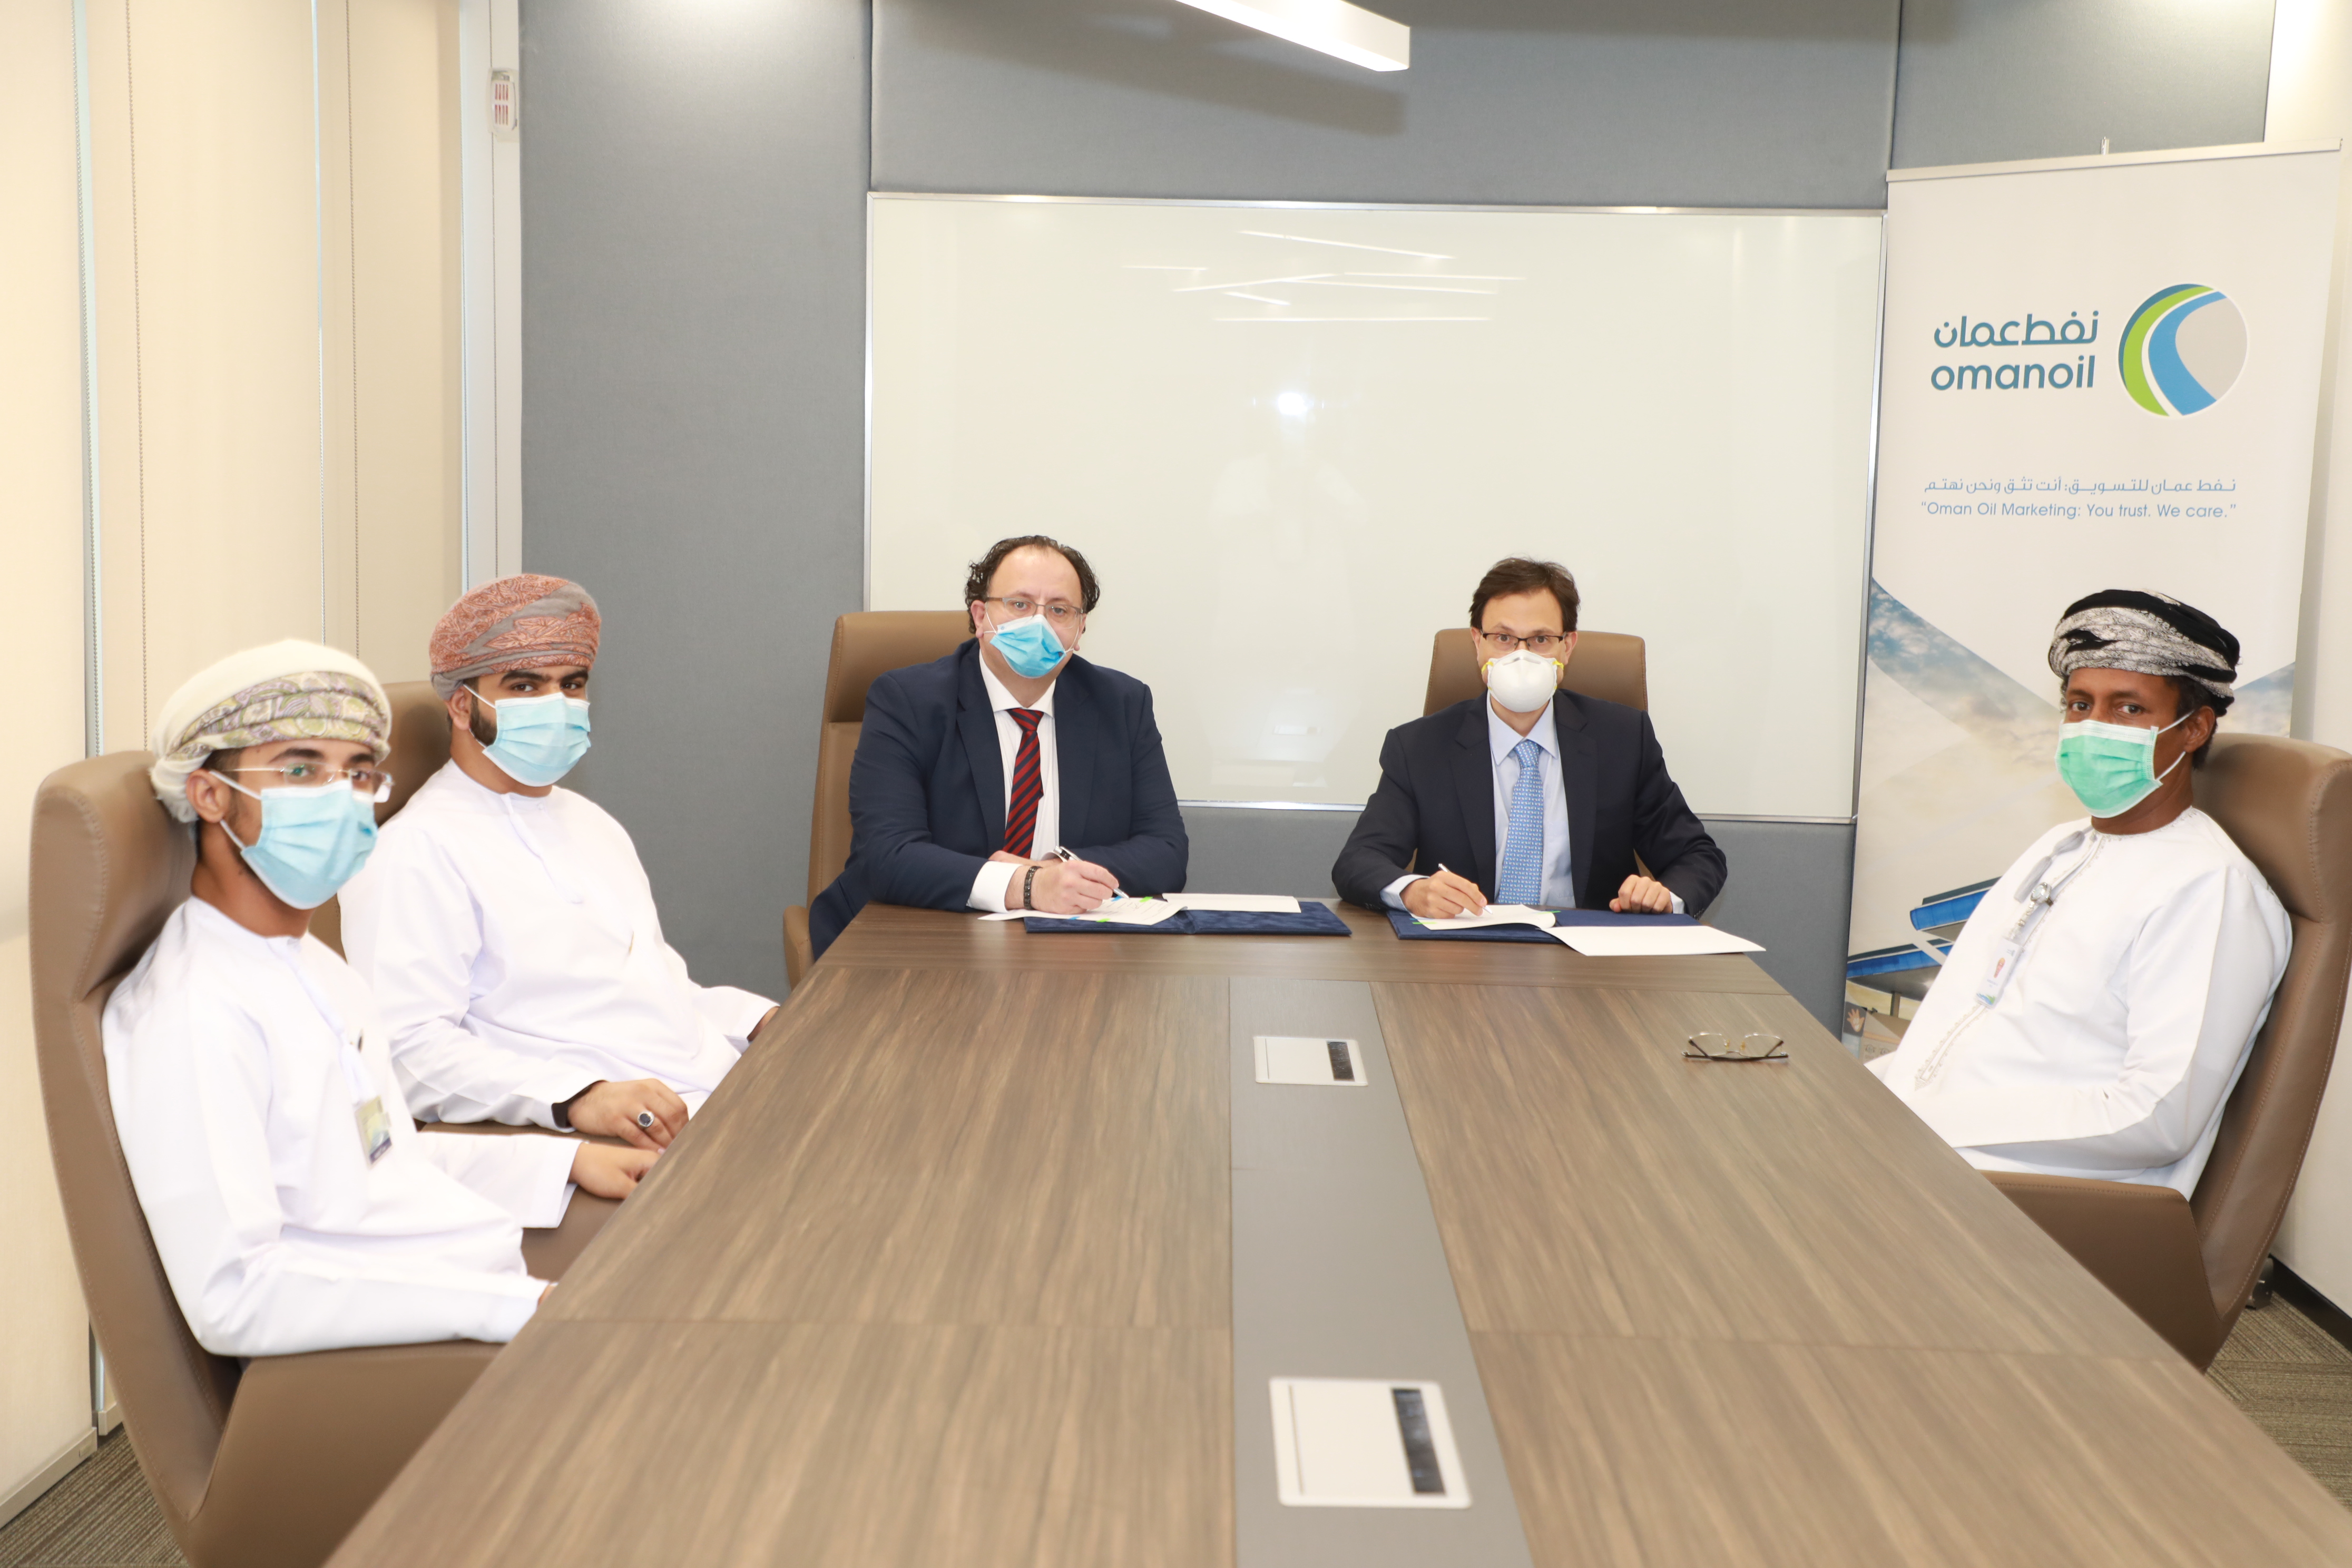 Agreement with Oman Oil Marketing Company (OOMCO) image